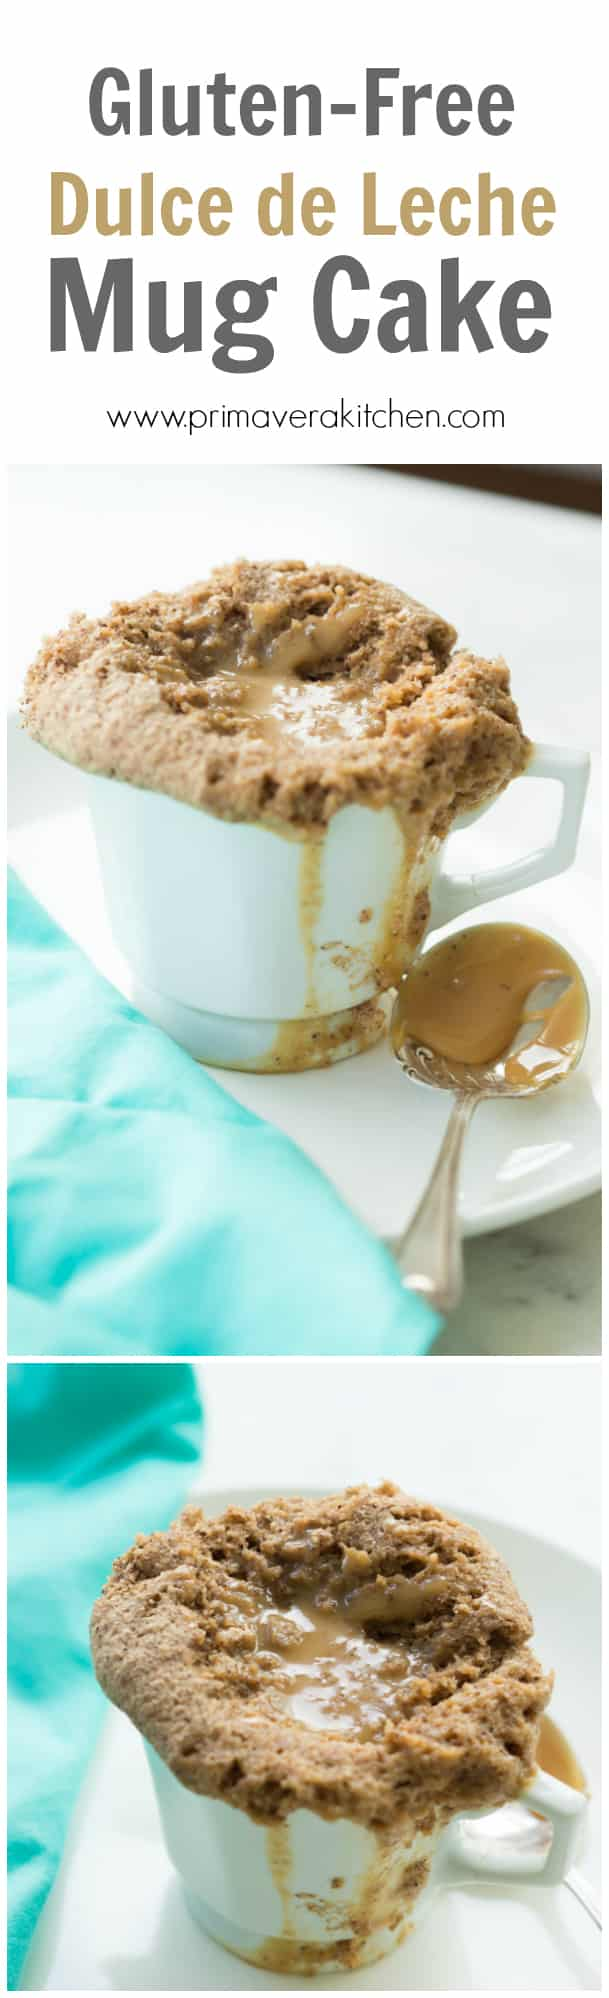 Gluten-free Dulce de Leche Mug Cake - This gluten-free Dulce de Leche Mug Cake is very moist, flavourful and takes only 3 minutes in the microwave to be ready. Don't have dulce de leche? Just use peanut butter instead and make it a vegan cake too.